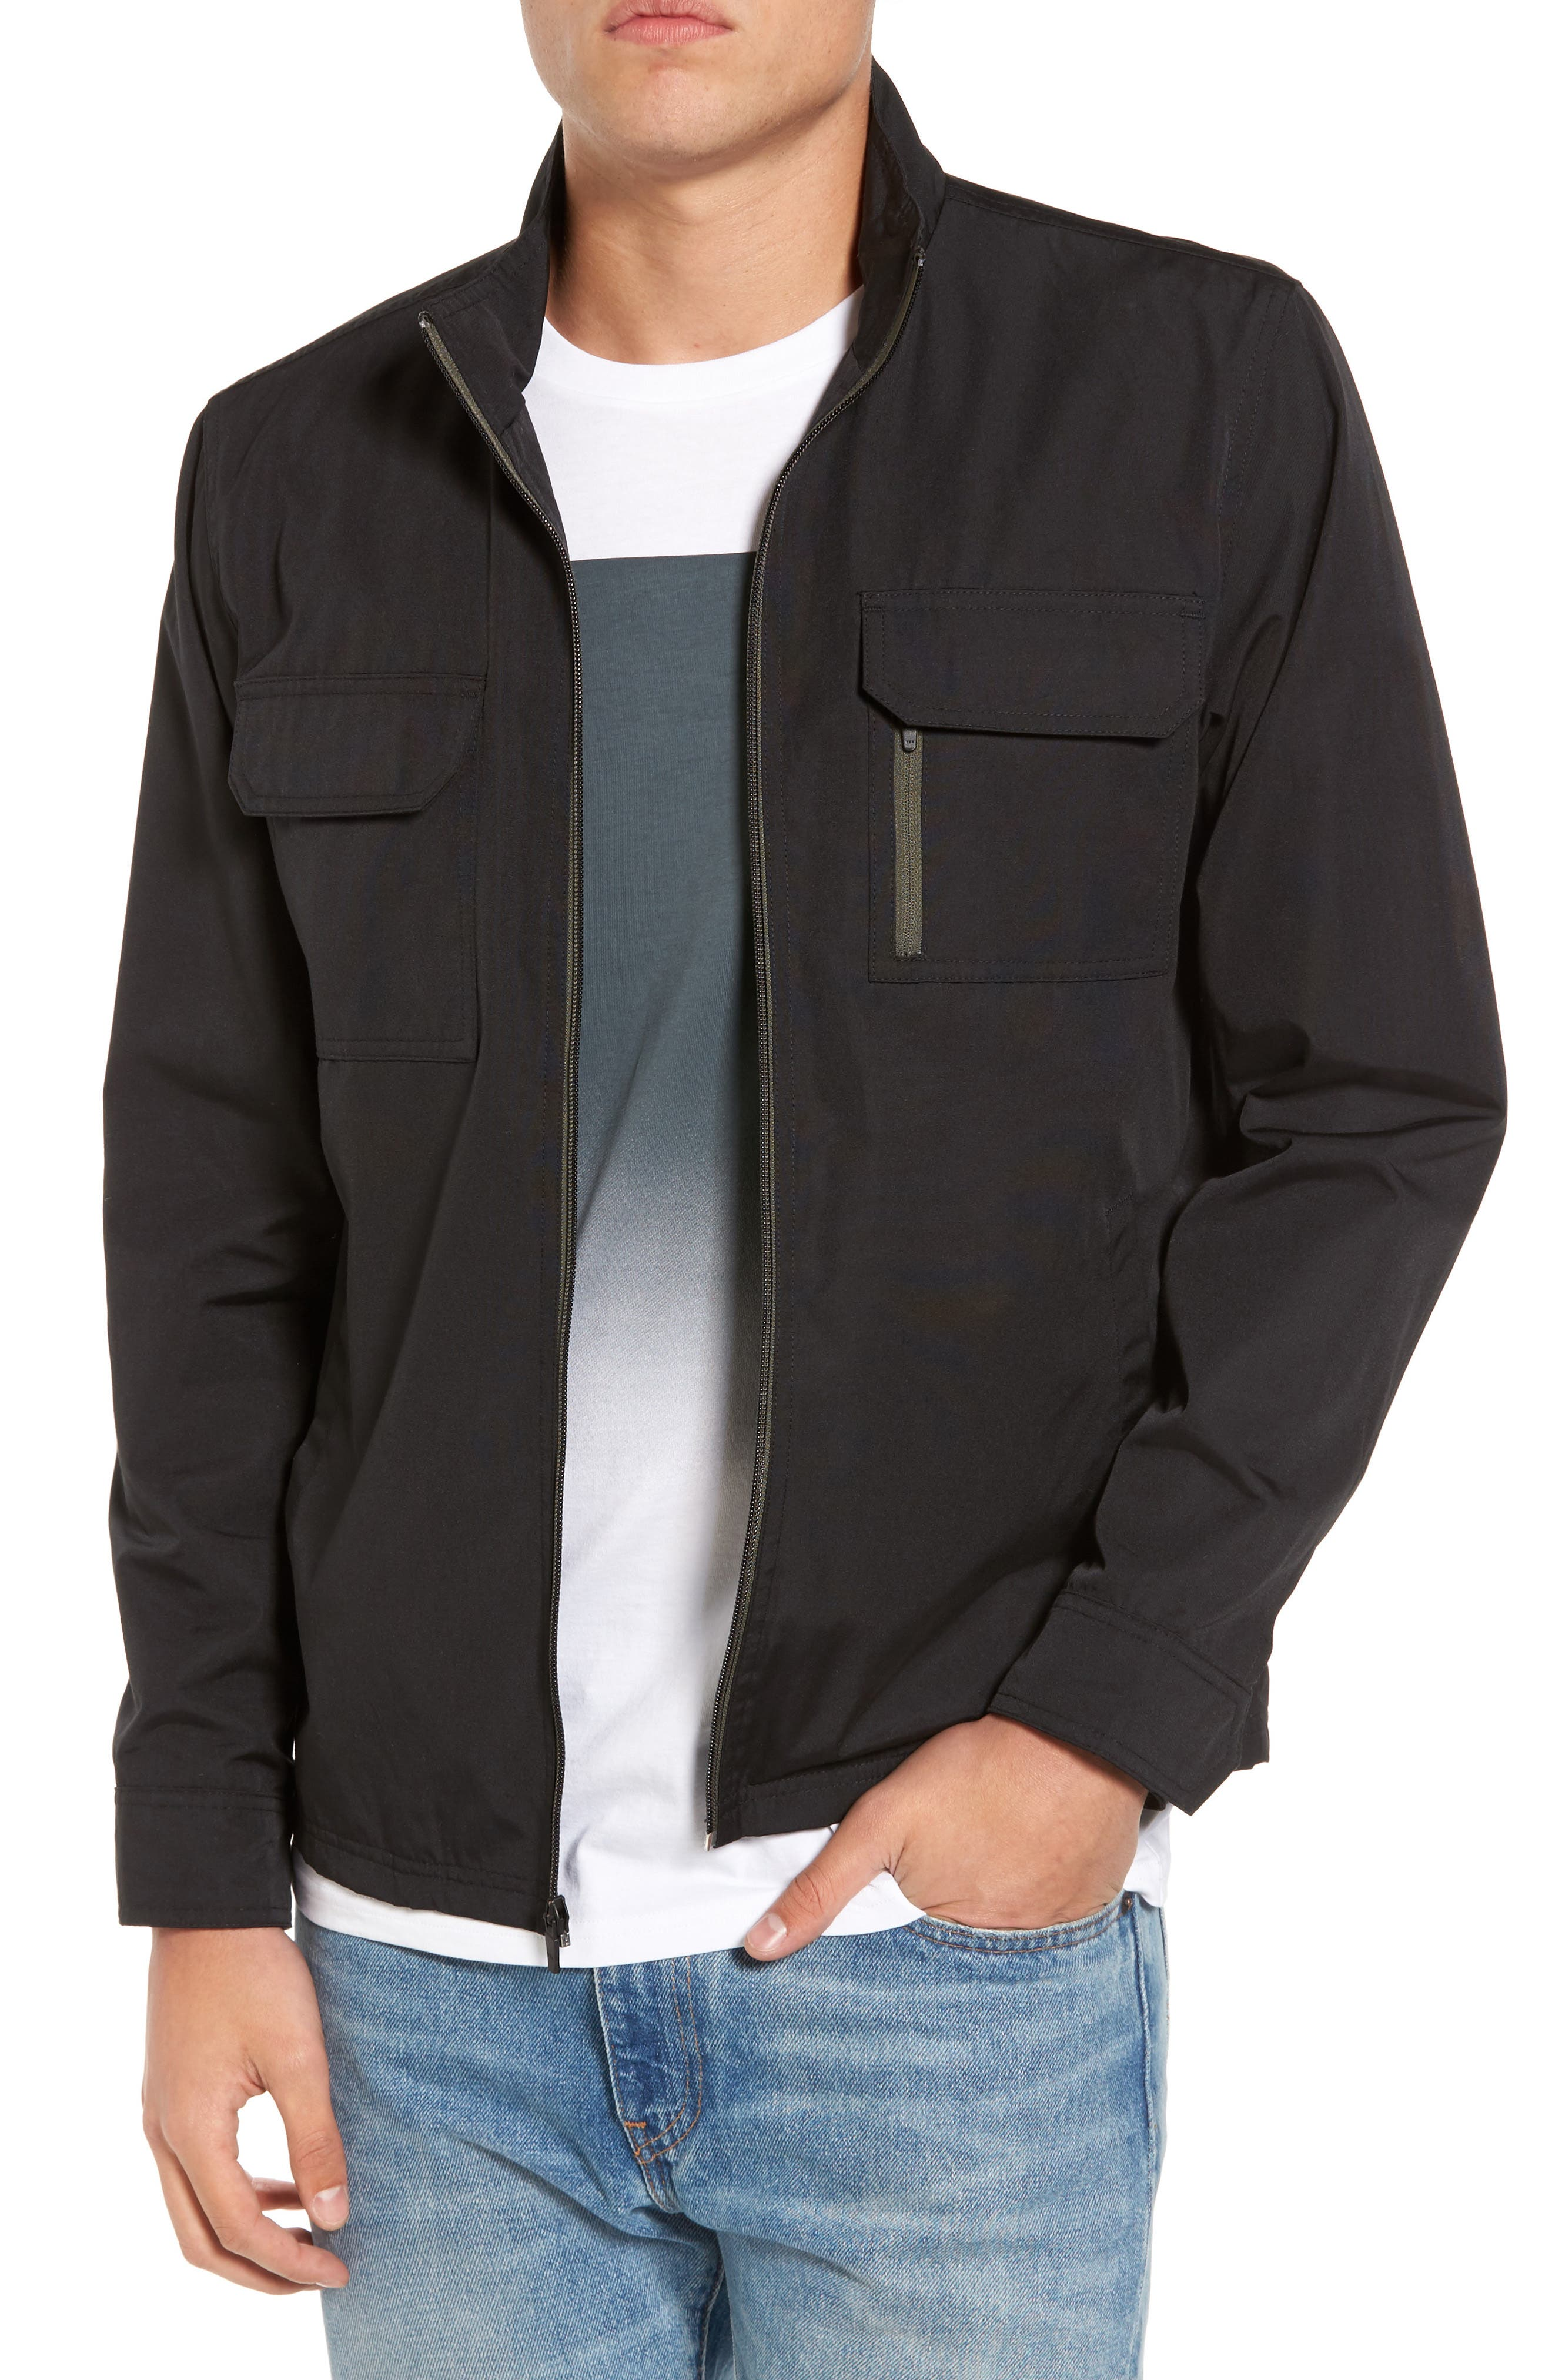 Staple Jacket,                             Main thumbnail 1, color,                             Solid Black